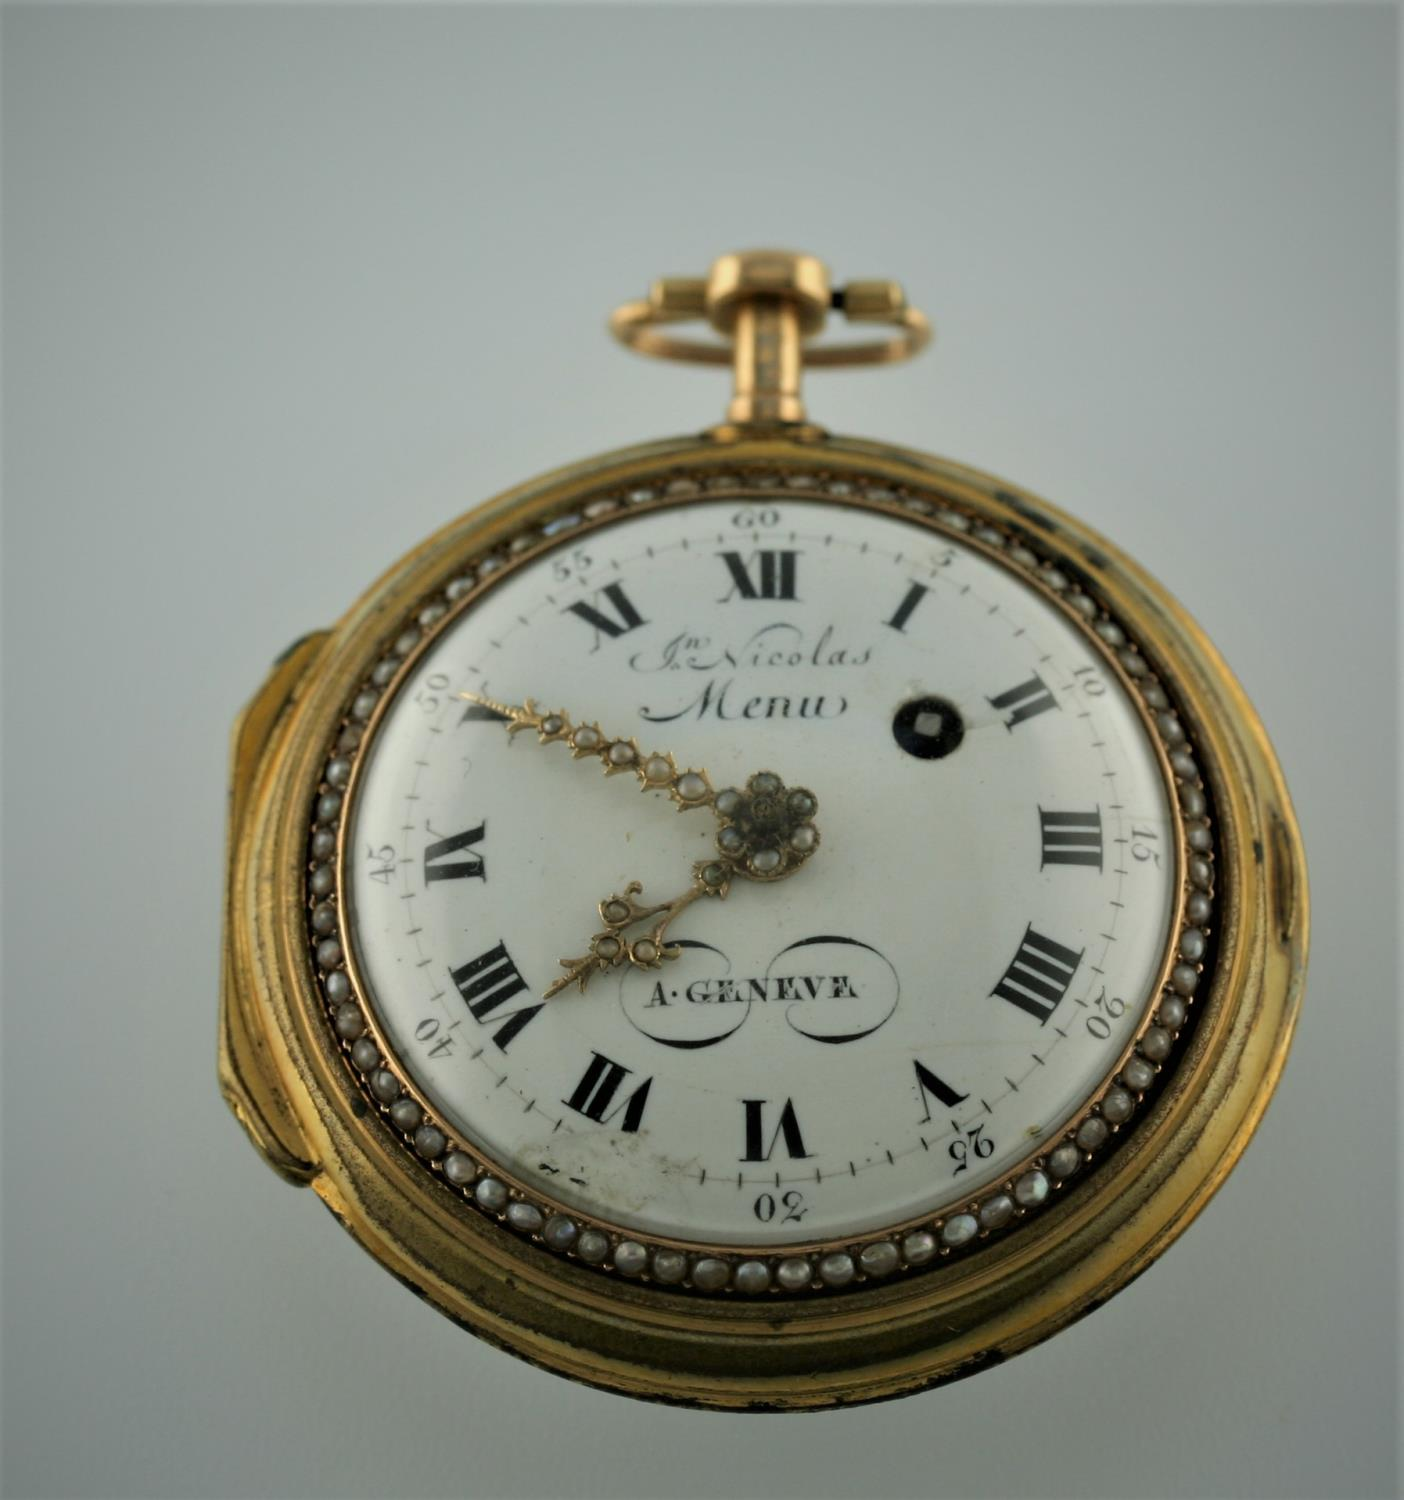 A SWISS LATE 18TH CENTURY PAIR CASED POCKET WATCH BY JEAN NICOLAS MENU the signed white enamel - Image 9 of 10